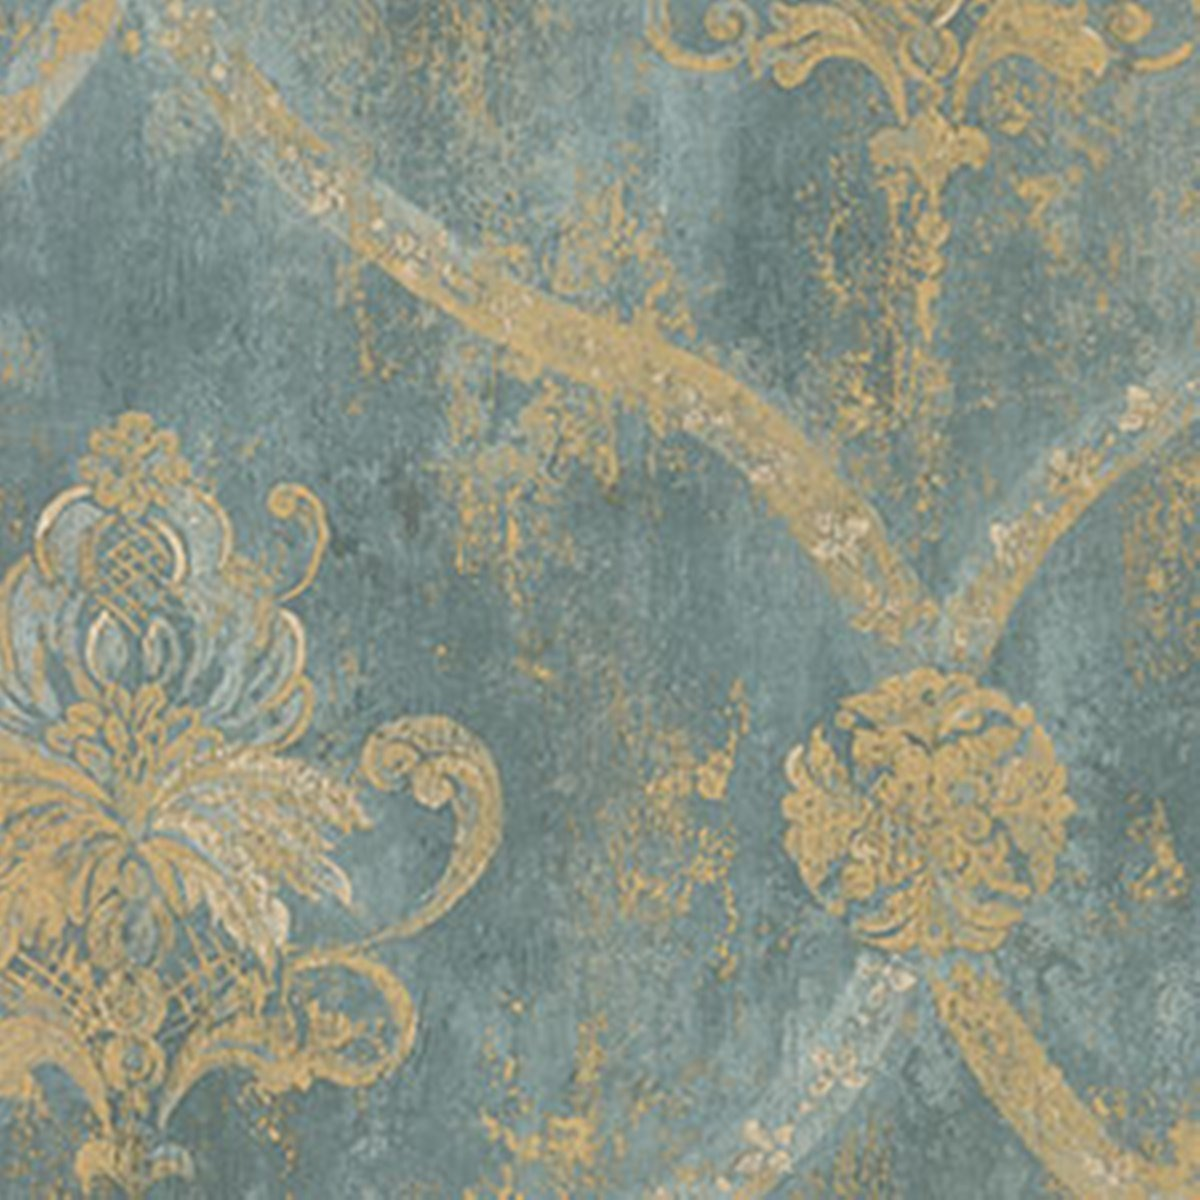 Famous Wallpaper French Faux Aqua Blue Large Damask with Gold by Norwall  CL92